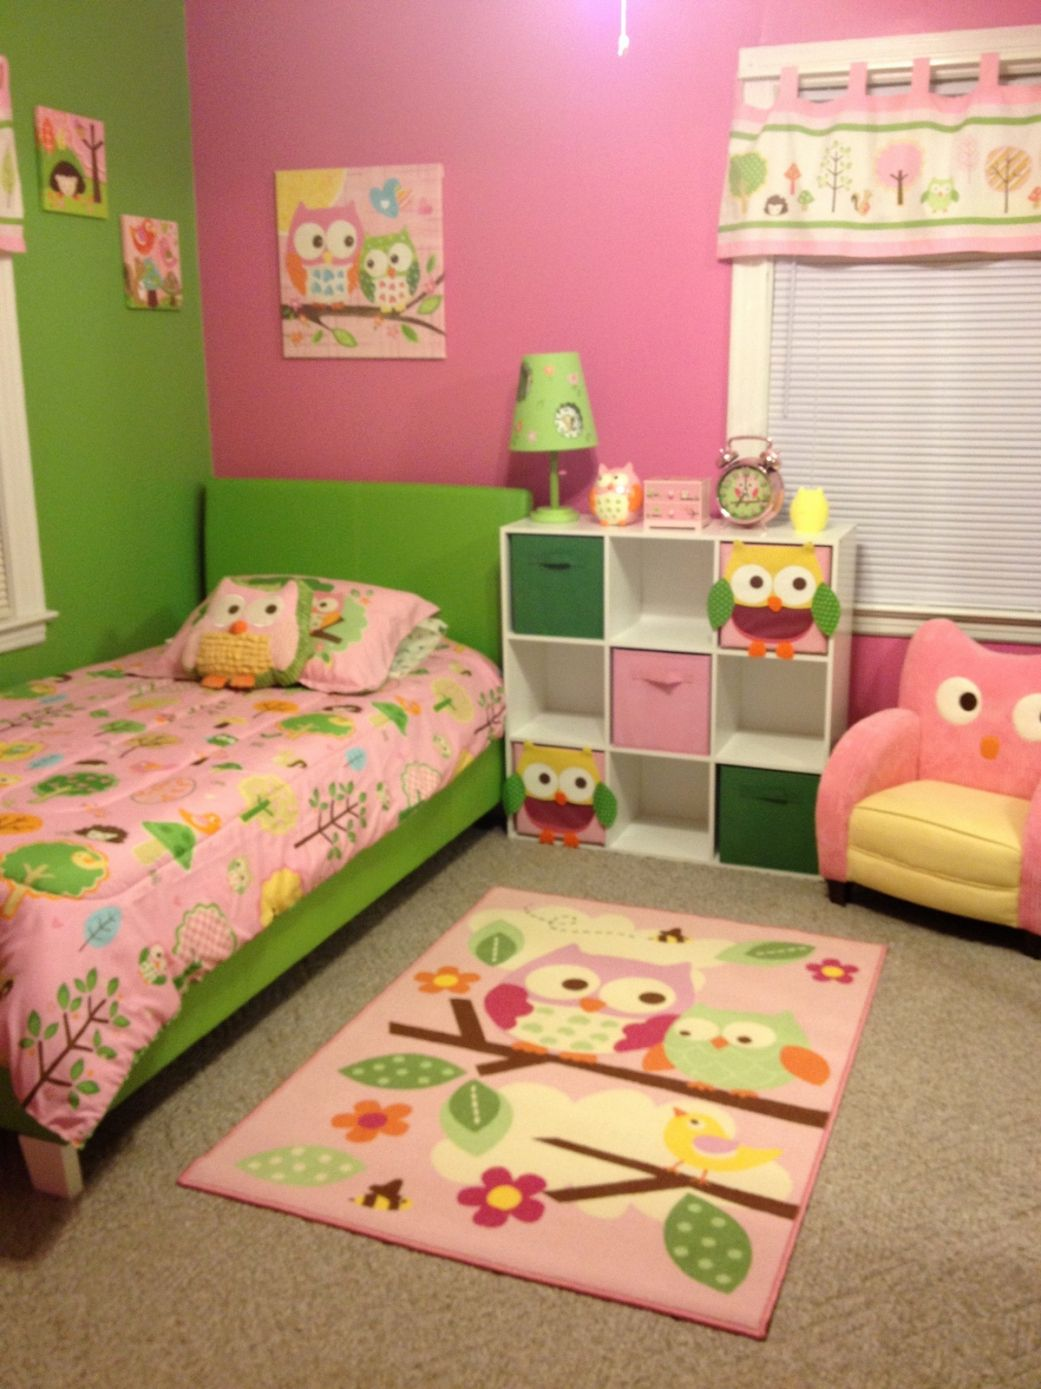 2018 Owl Bedroom Decor Kids Neutral Interior Paint Colors Check More At Http Www Soarority Com Owl Bedro With Images Girls Bedroom Sets Girl Bedroom Decor